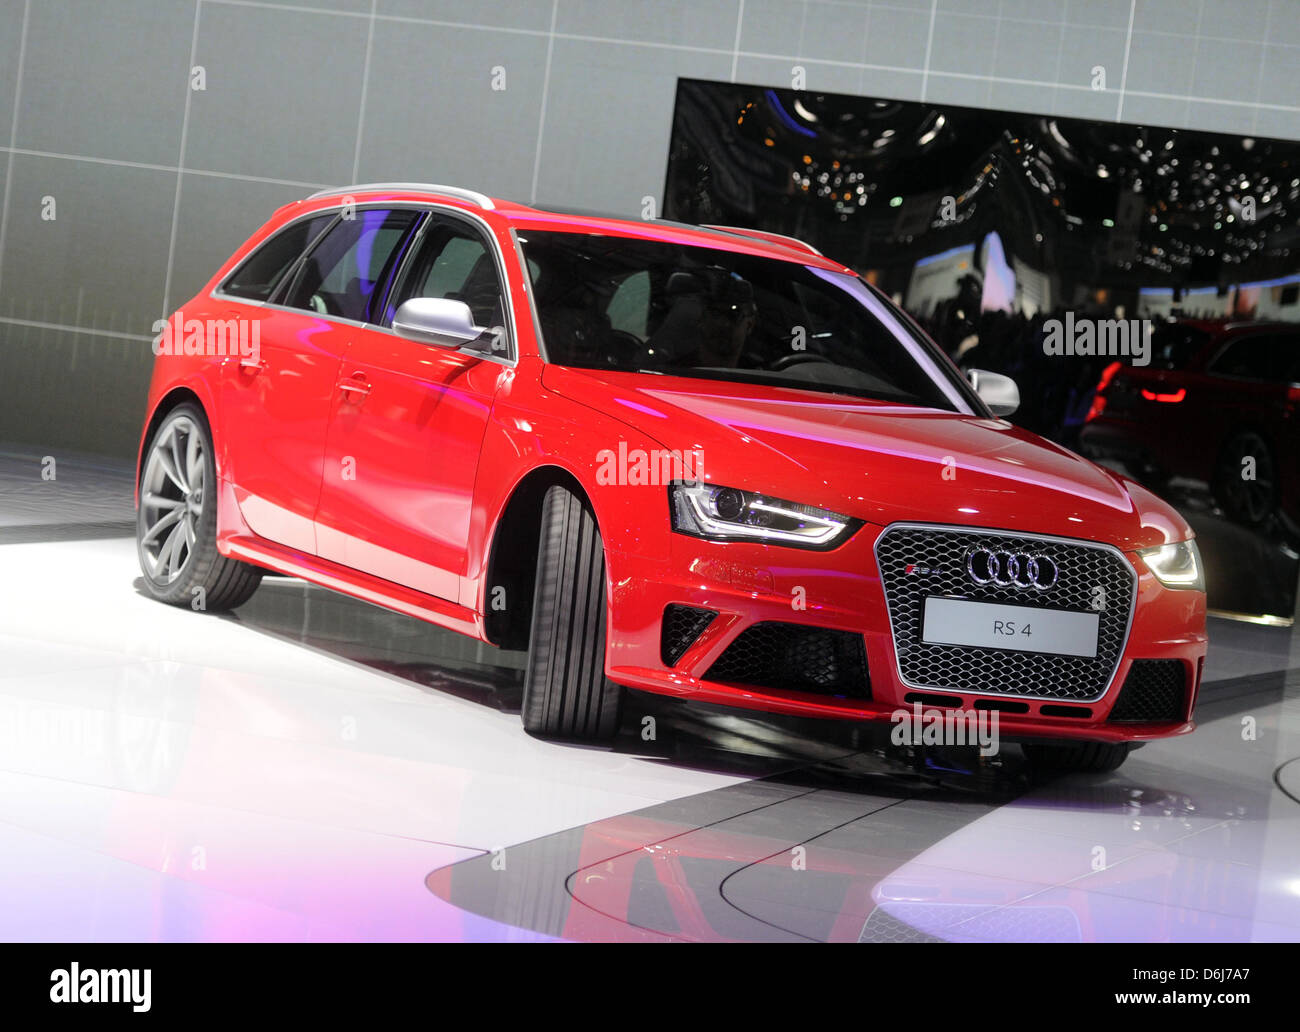 The New Audi A4 Rs Avant Is Presented During The First Press Day Of